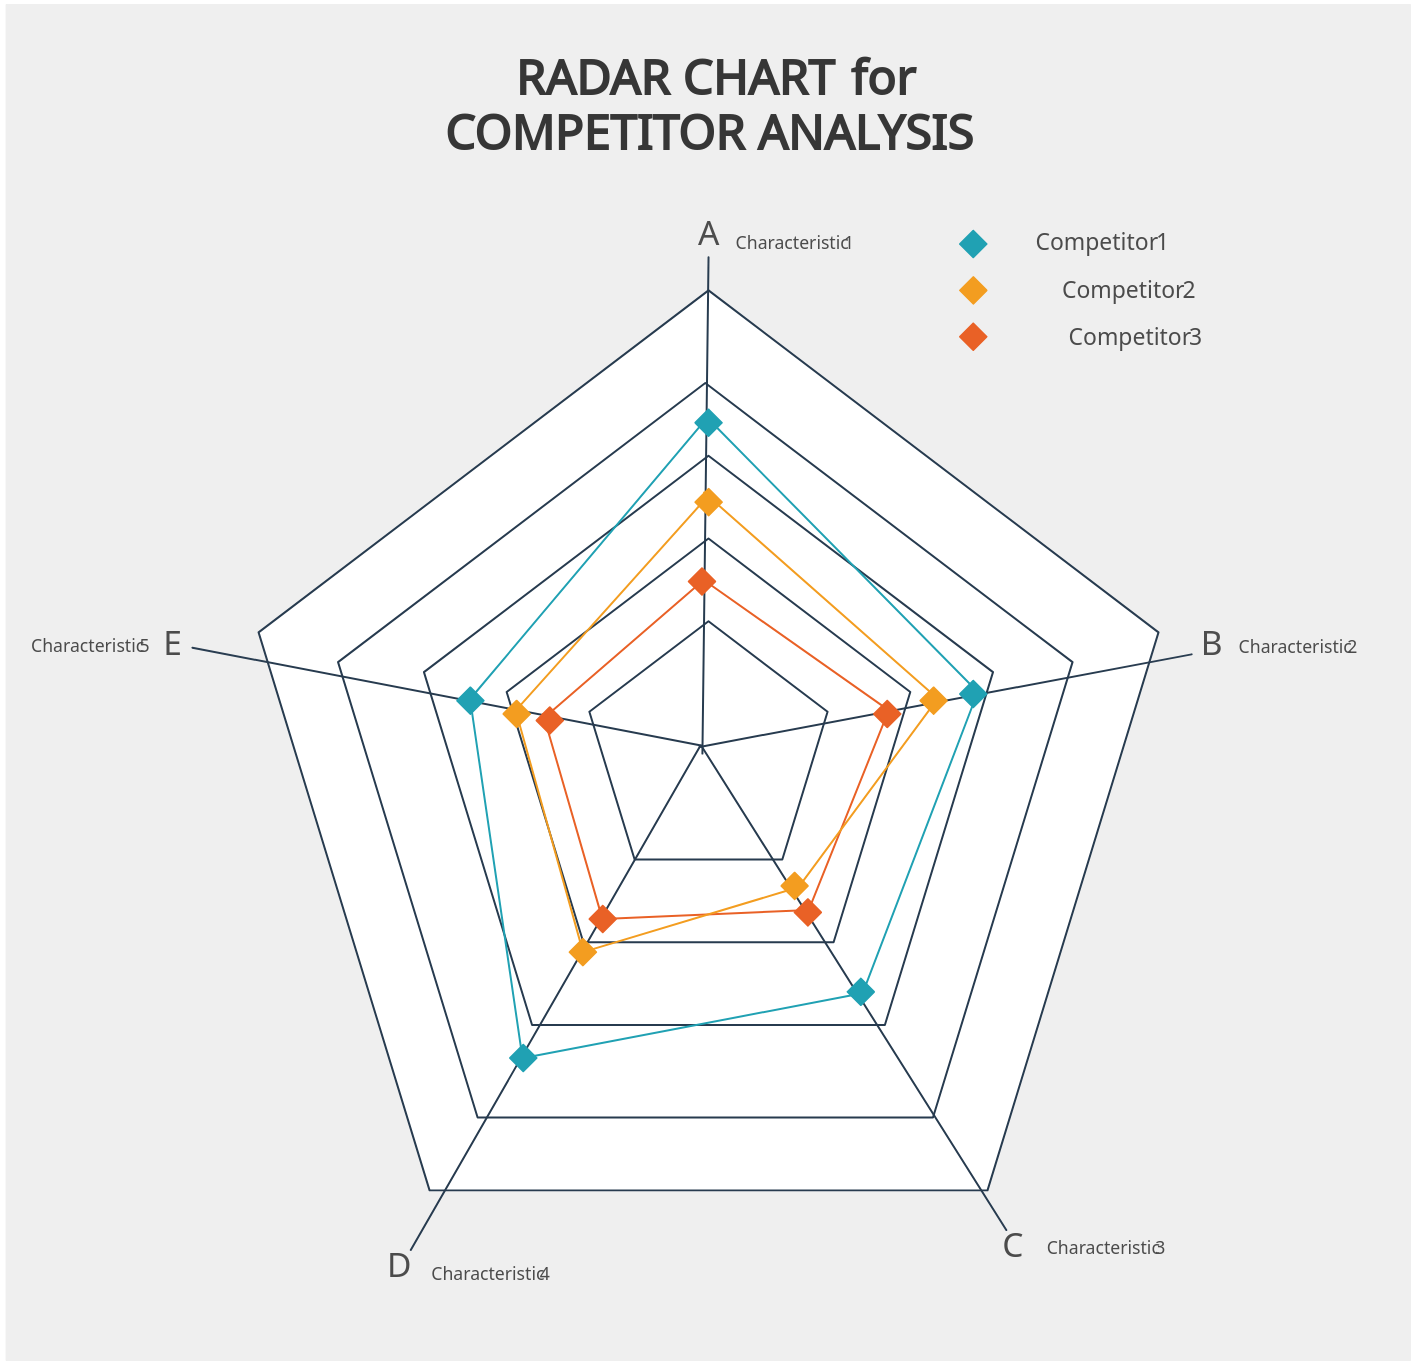 Radar Chart for Competitive Analysis